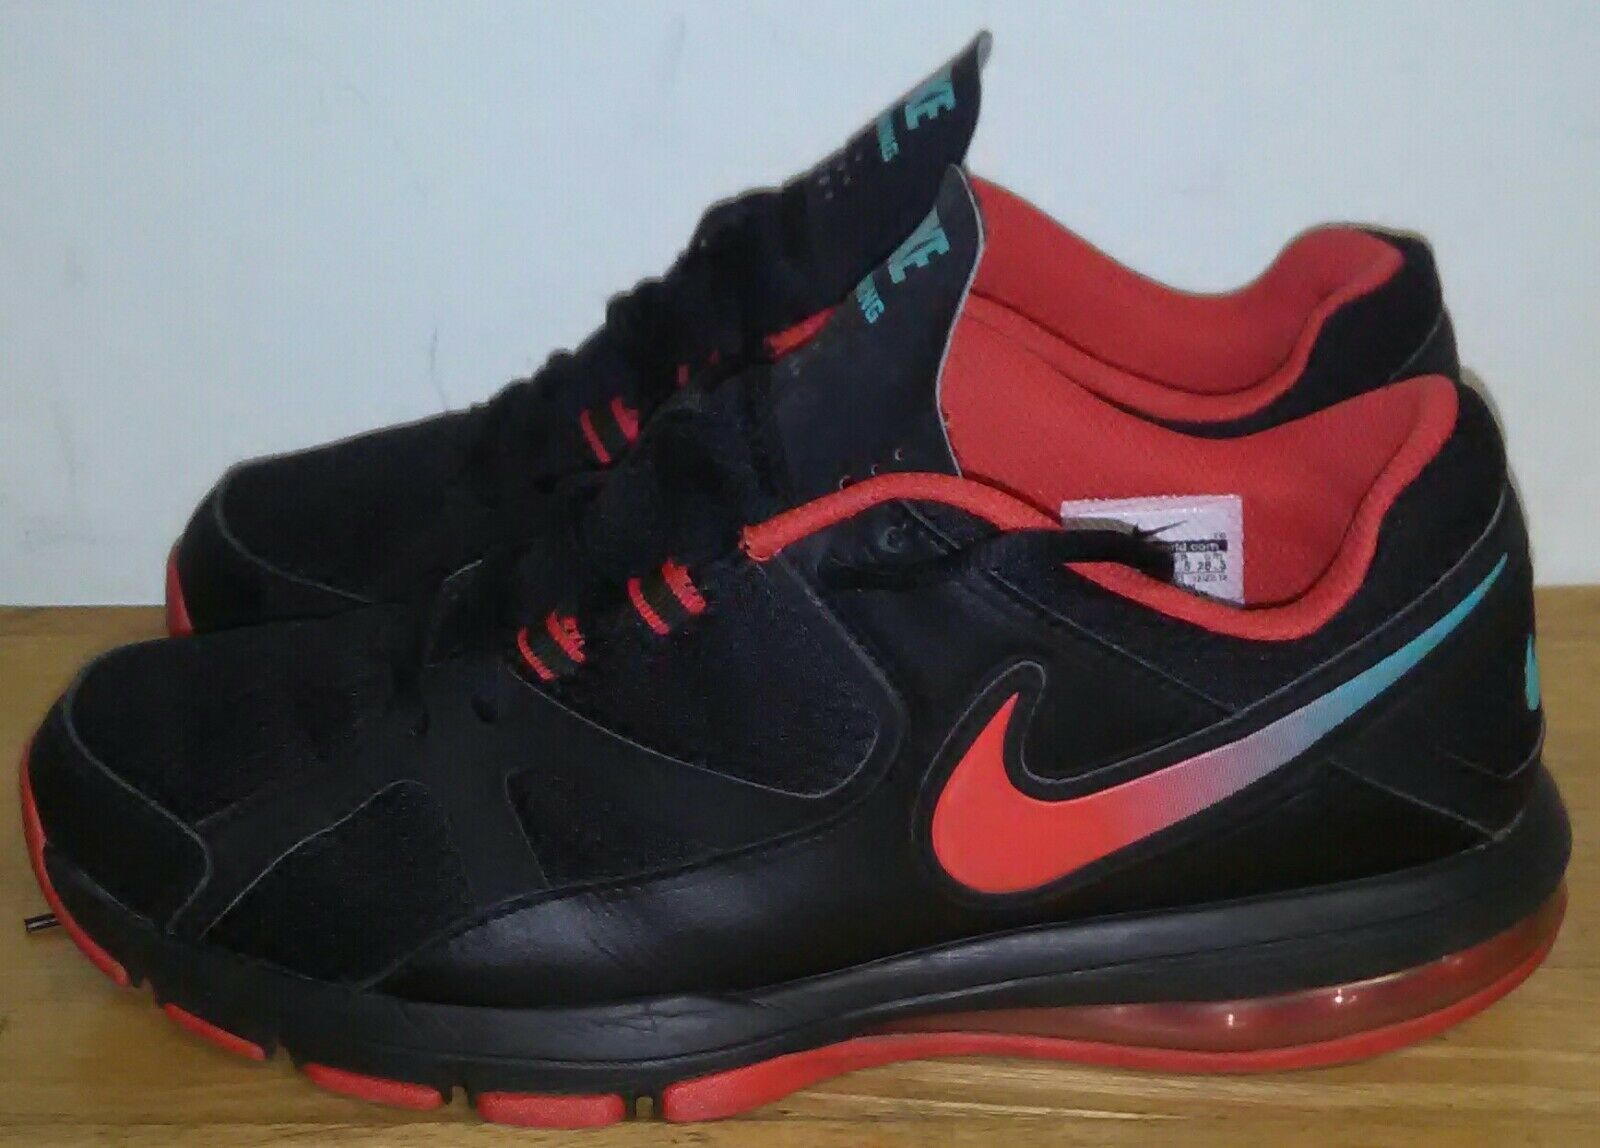 Nike Air Max Compete Tr 579940 001. Size 10.5